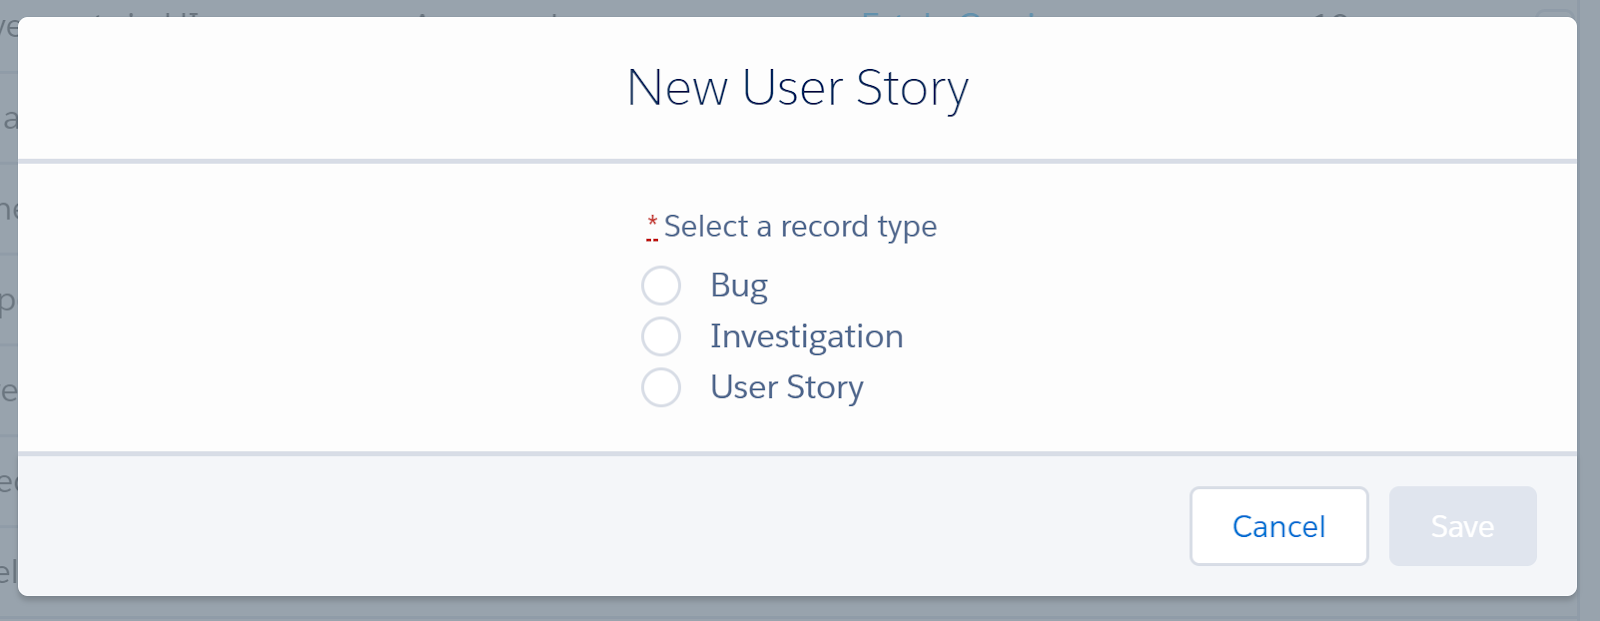 new_userstory.PNG